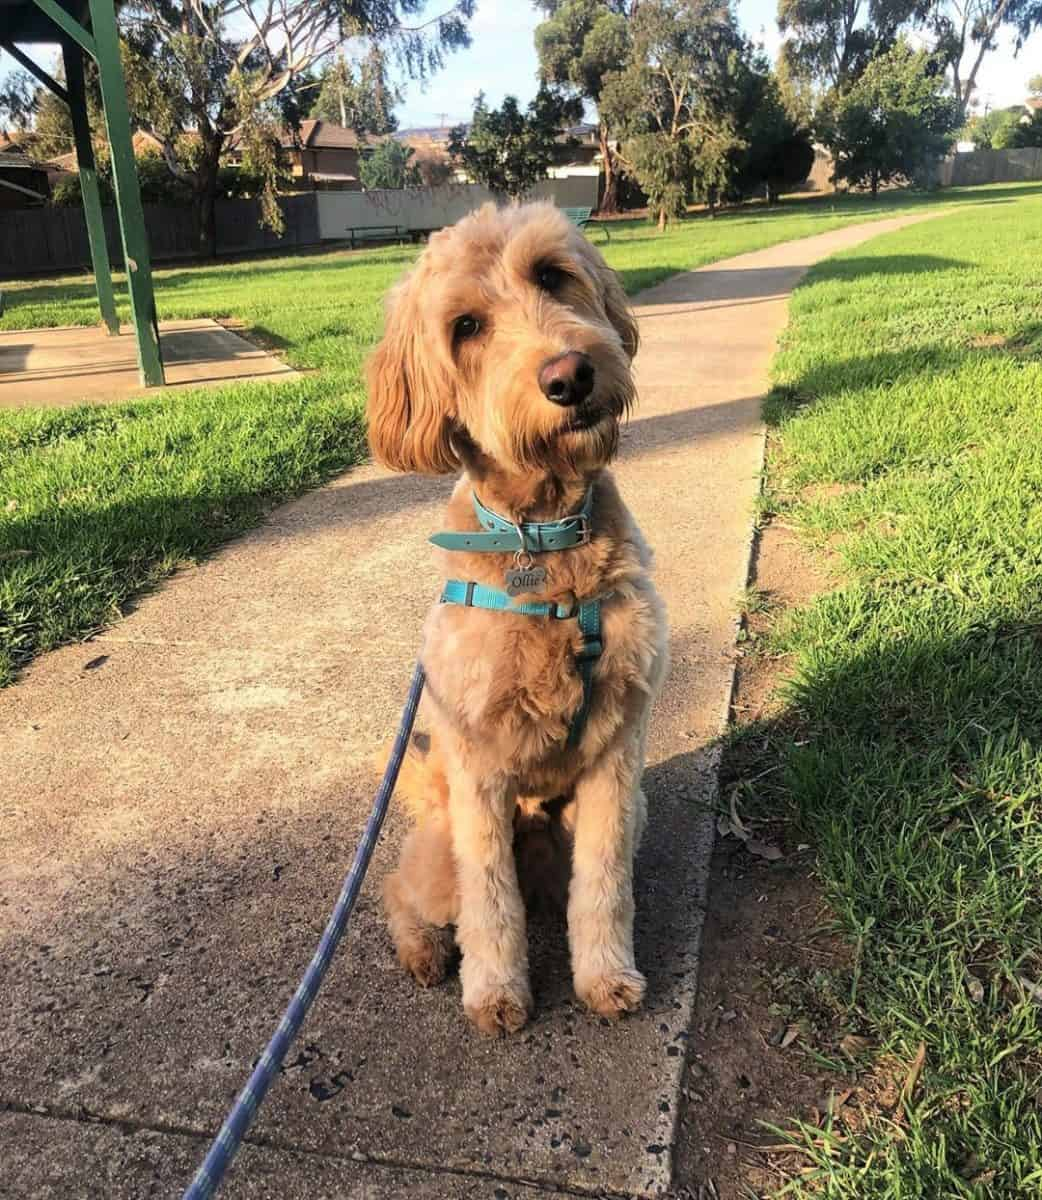 Goldendoodle walking in a park